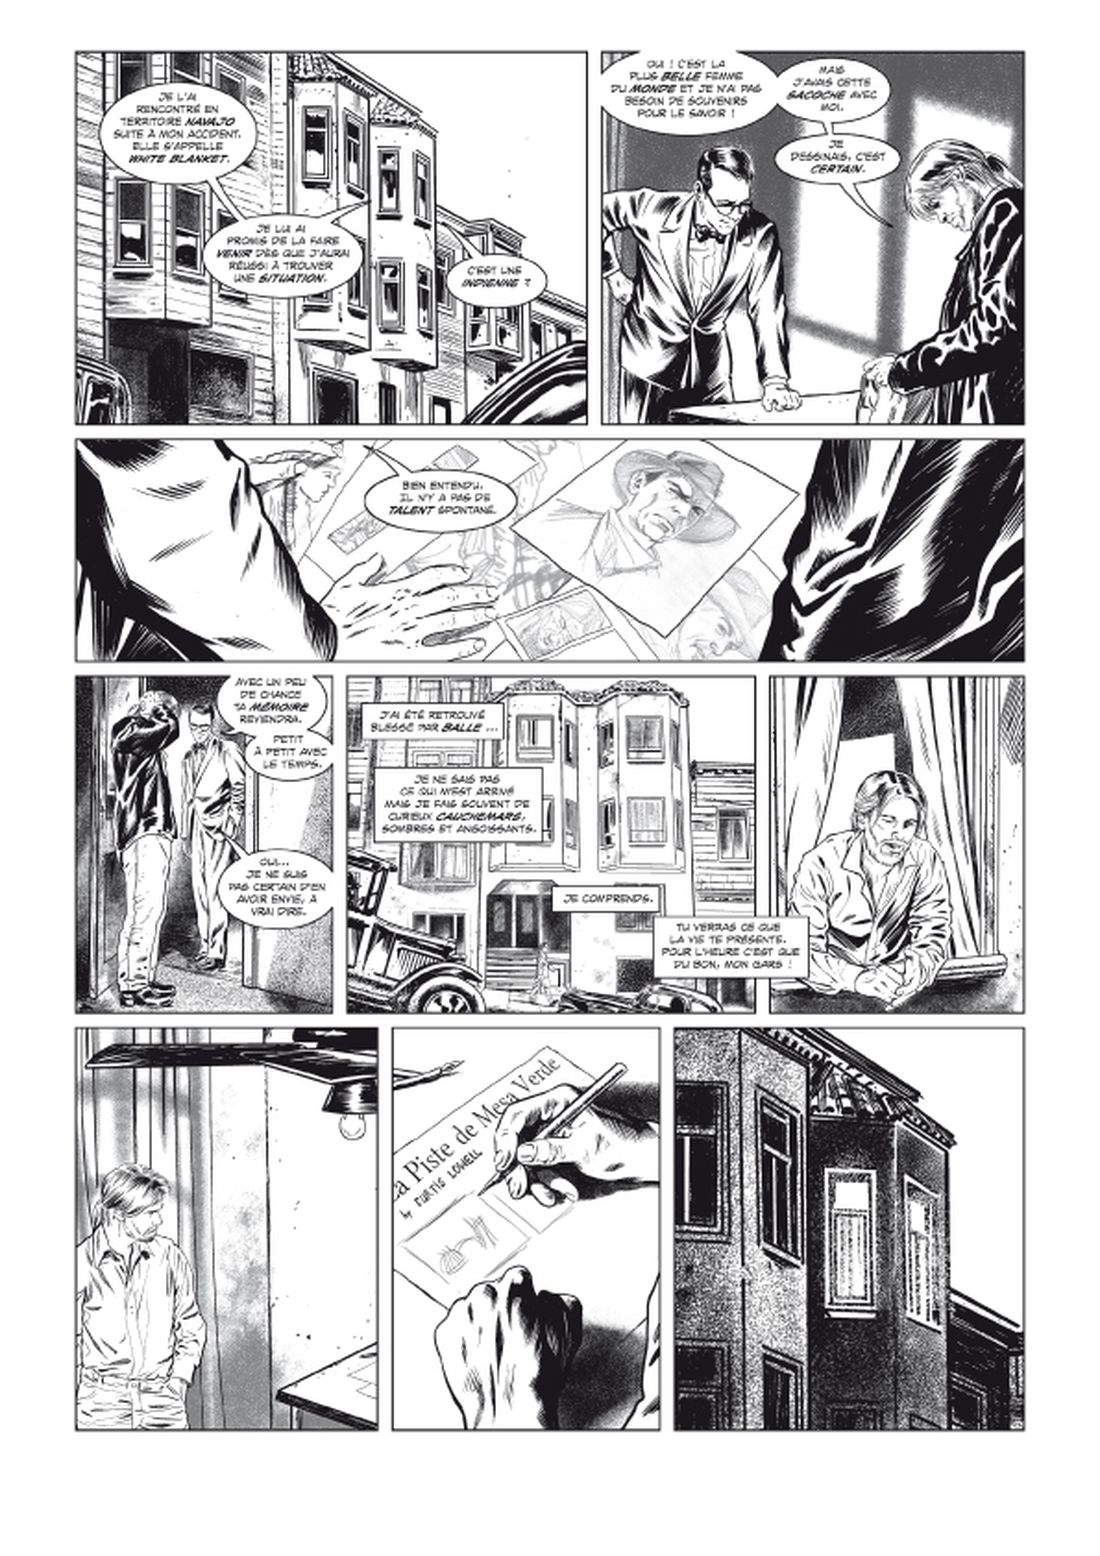 l'Art du Crime, version noir & blanc de la planche 38 du tome 5 © Glénat / Karl T. / Omeyer / Berlion